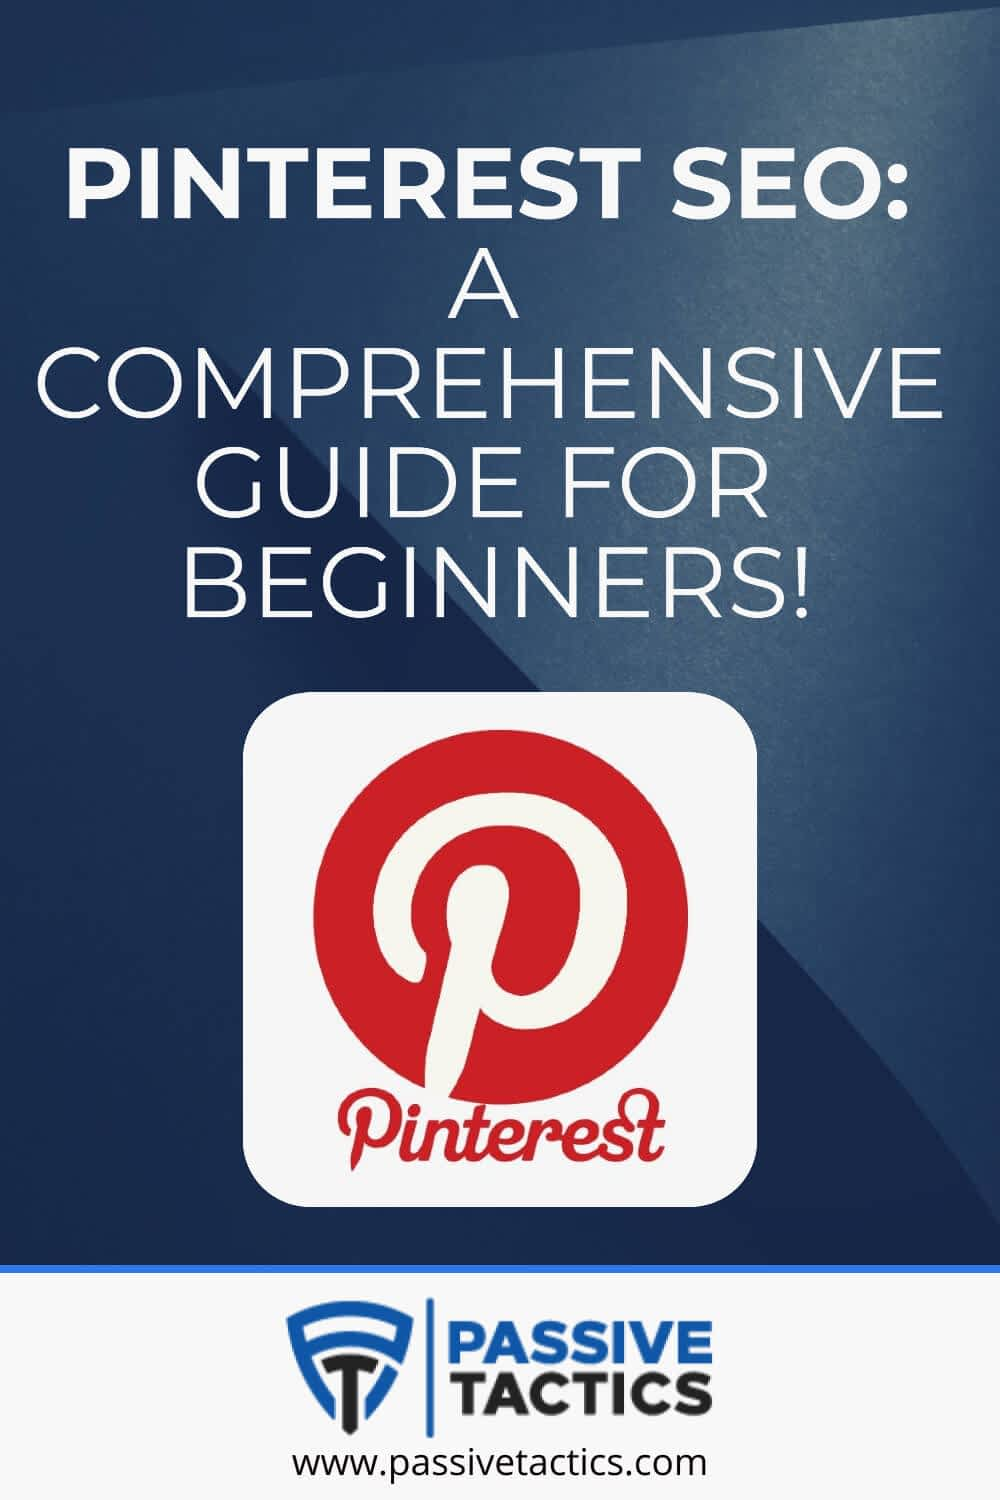 Pinterest SEO: A Comprehensive Guide For Beginners!